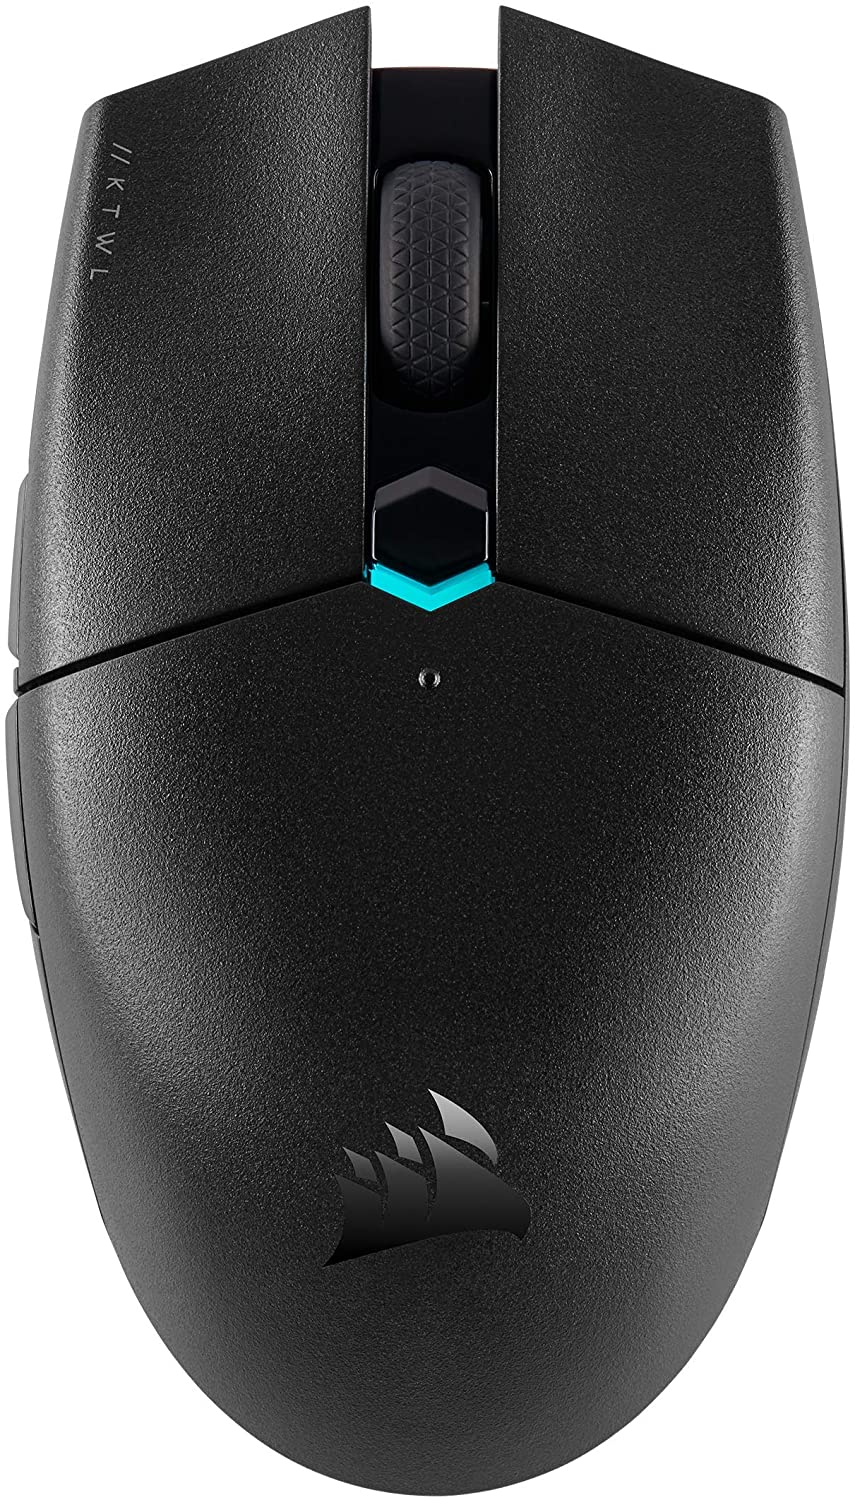 Top 10 Best Lightest Gaming Mouse - 2021 Buying Guide 6